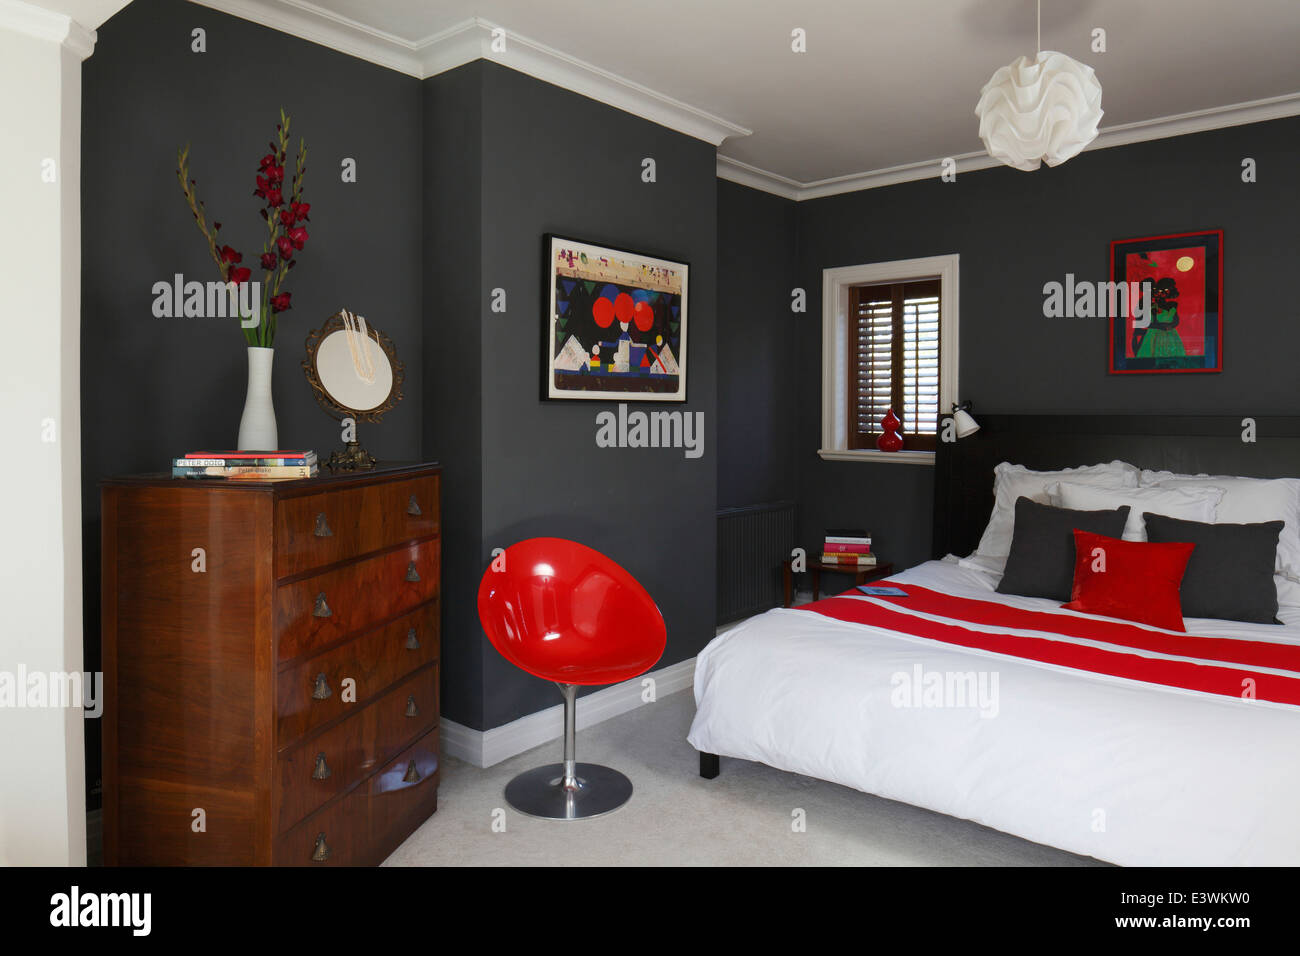 Red, White And Grey Colour Scheme In Modern Bedroom, Brighton, Sussex